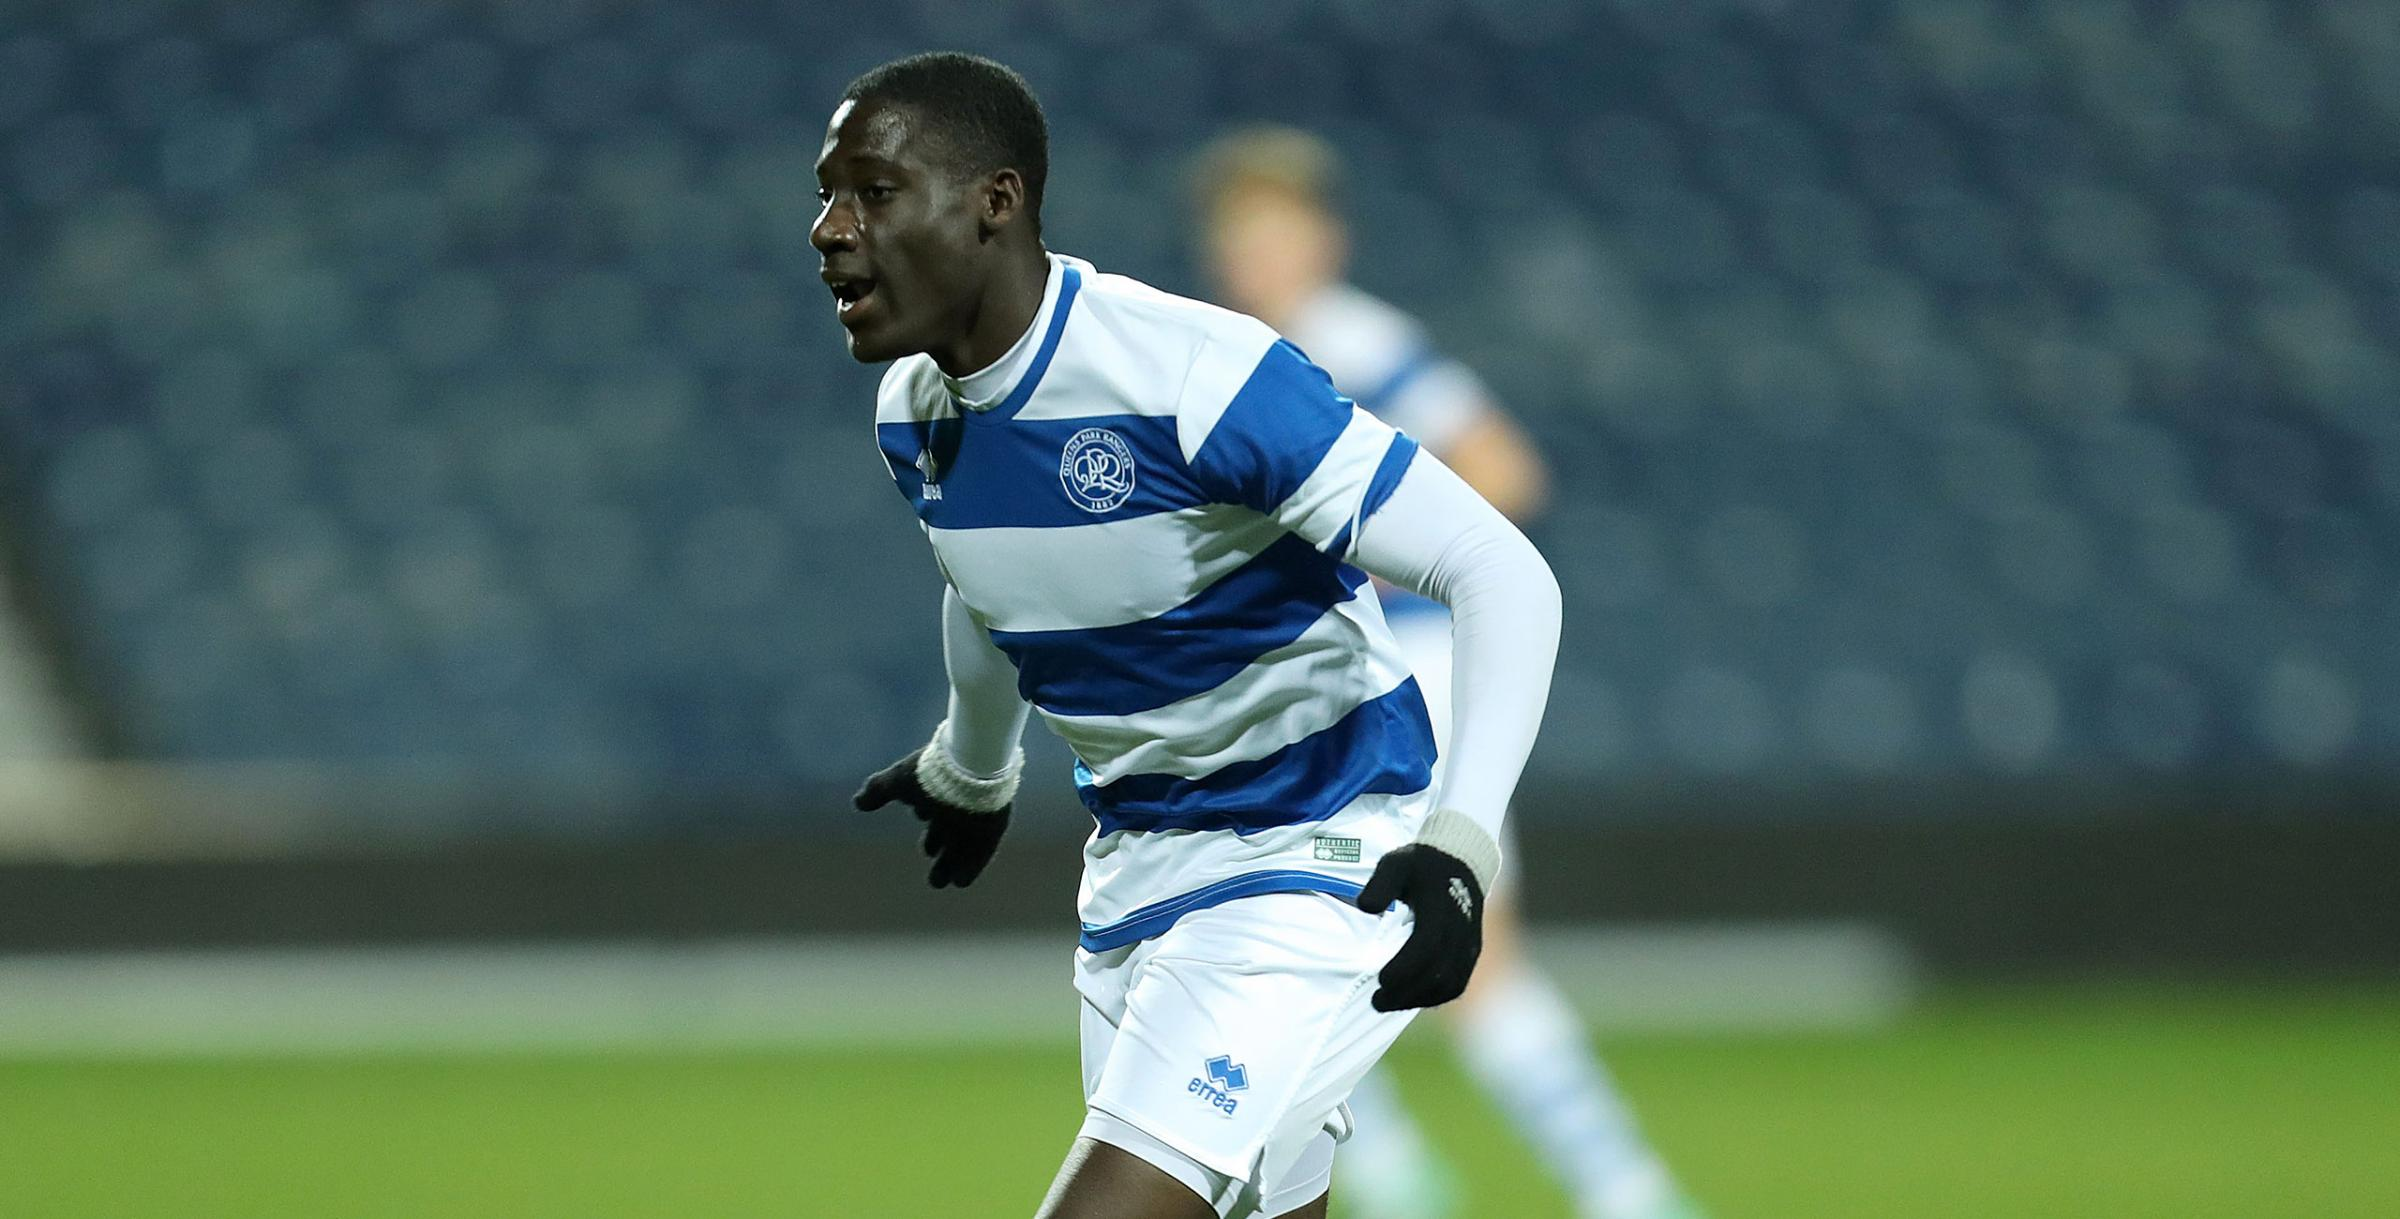 Mickel Platt Image with thanks to QPR